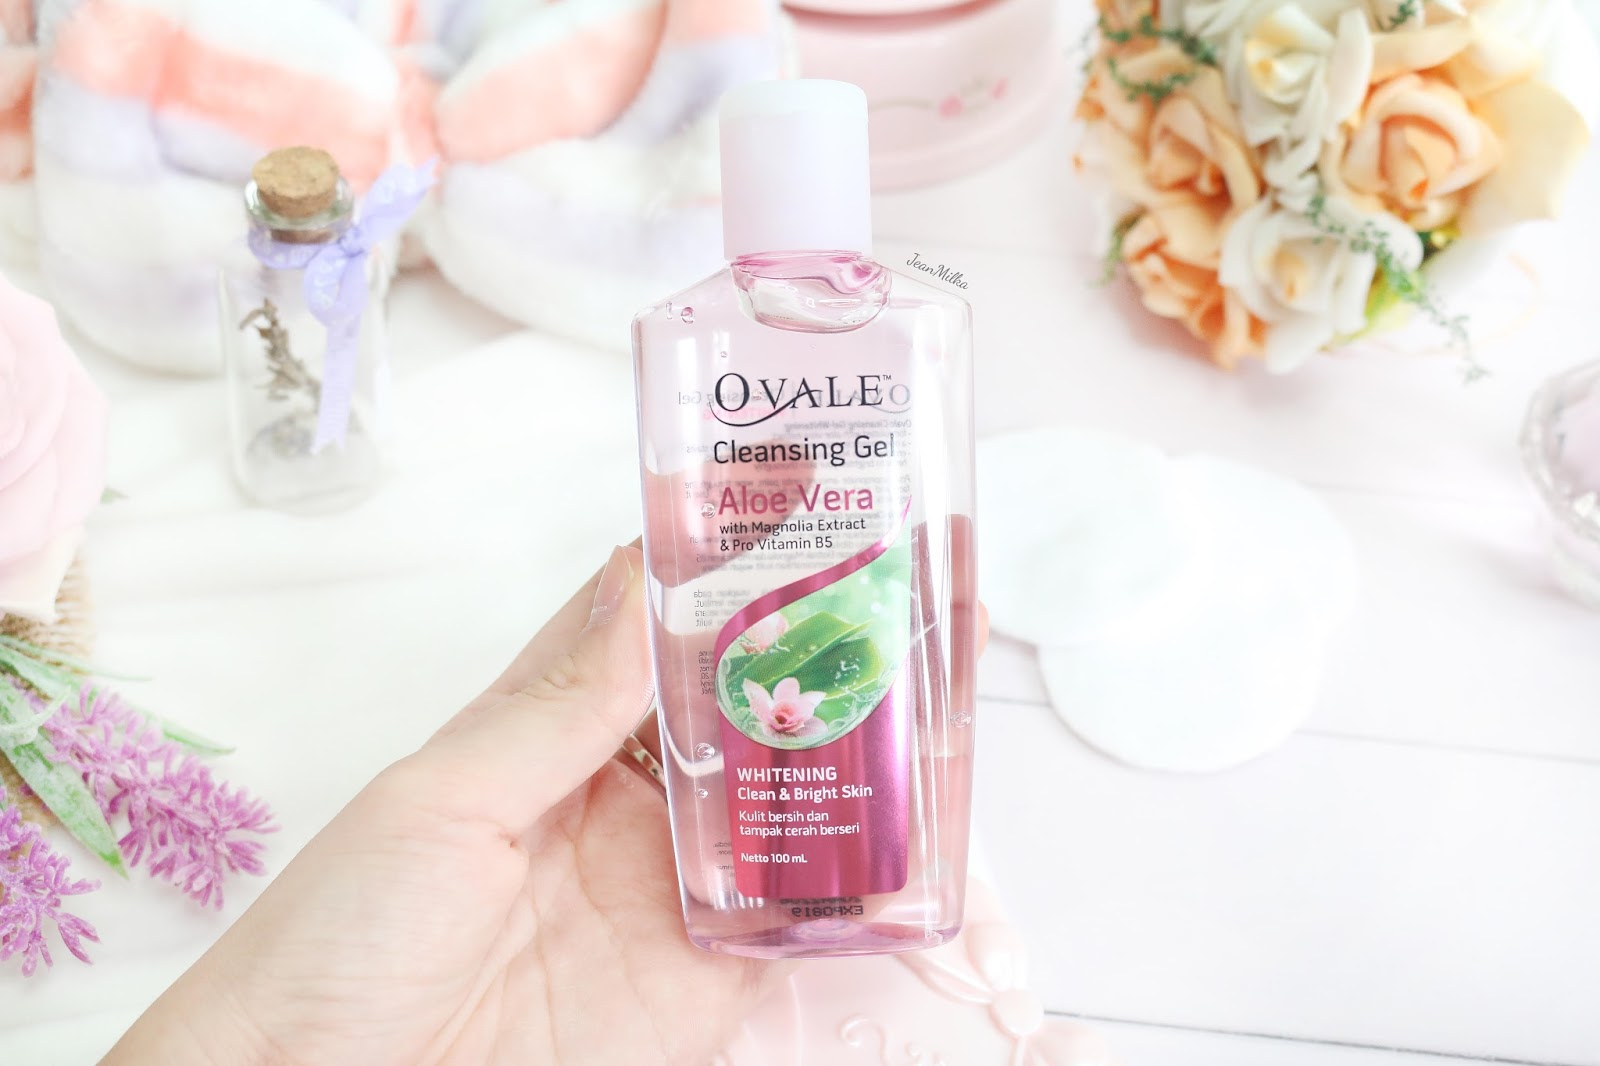 New Ovale Cleansing Gel Whitening Review Jean Milka Hair Vitamin Makeup Remover